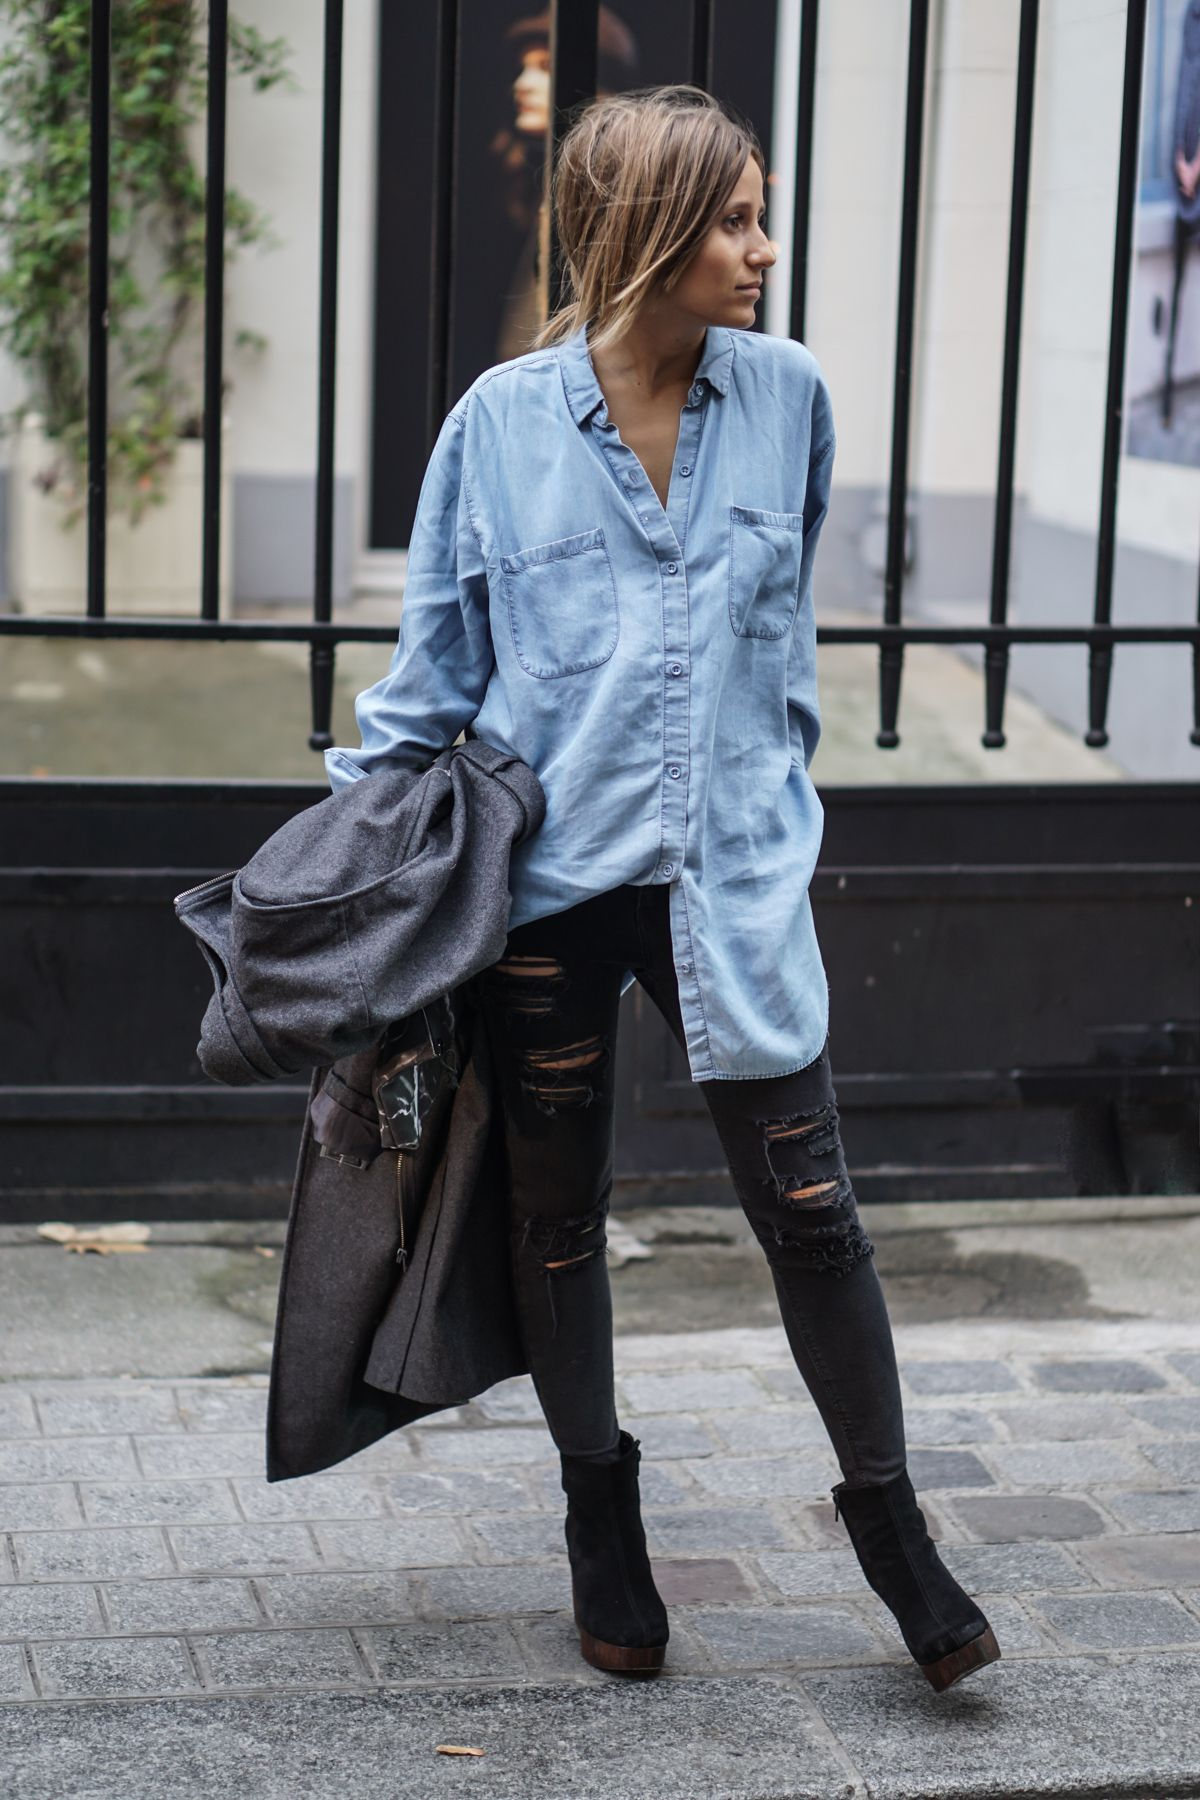 a69419871534 Oversized Denim Button Up Fall Street Style by whitney. Camille / 12  novembre 2015DENIM SHIRT